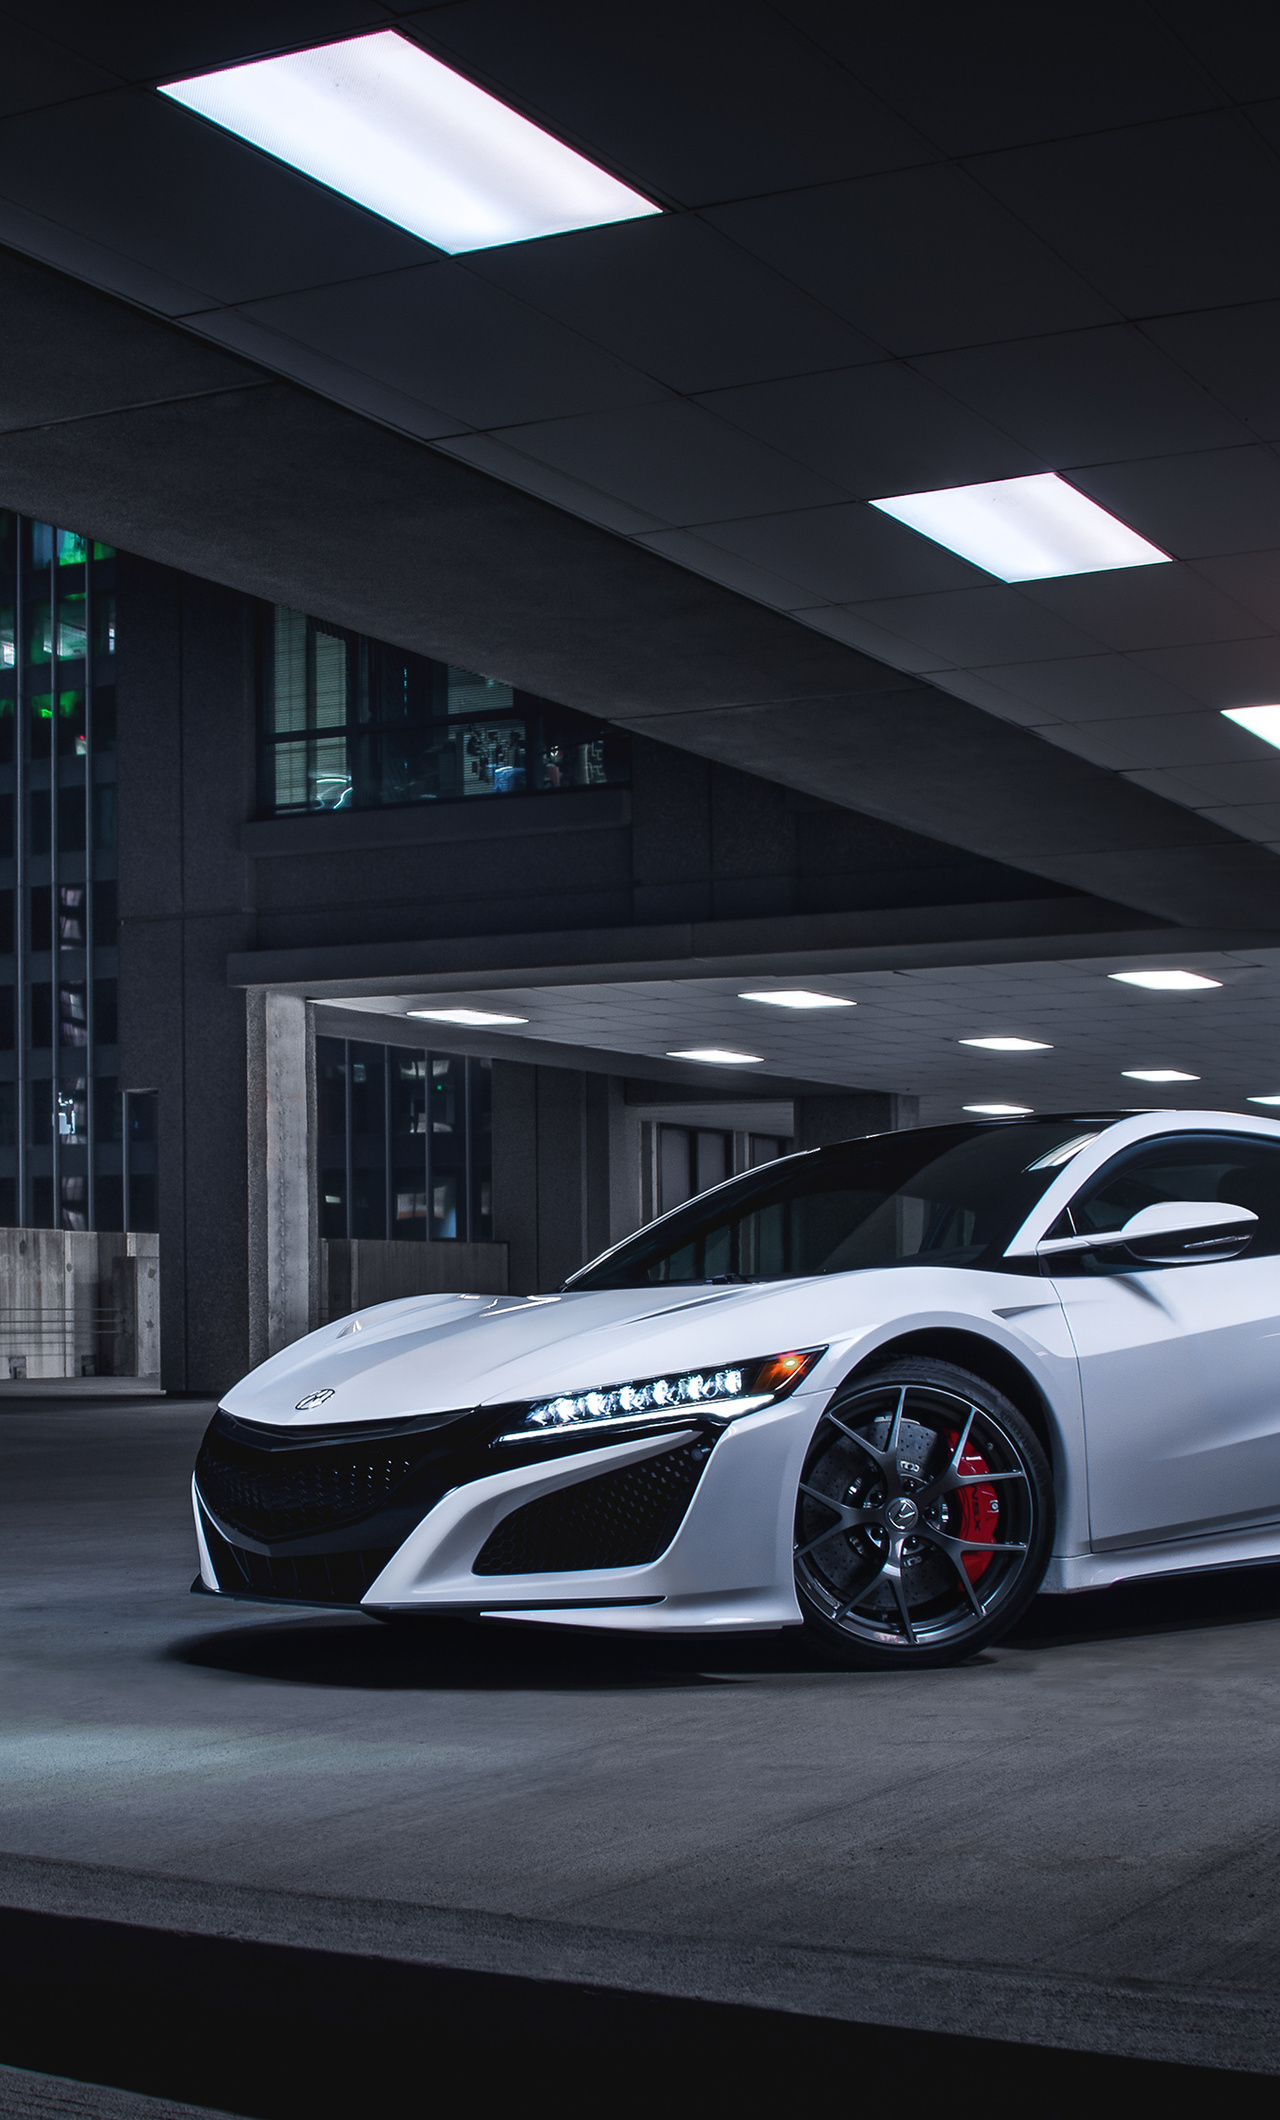 1280x2120 Acura Nsx 2019 Iphone 6 Hd 4k Wallpapers Images